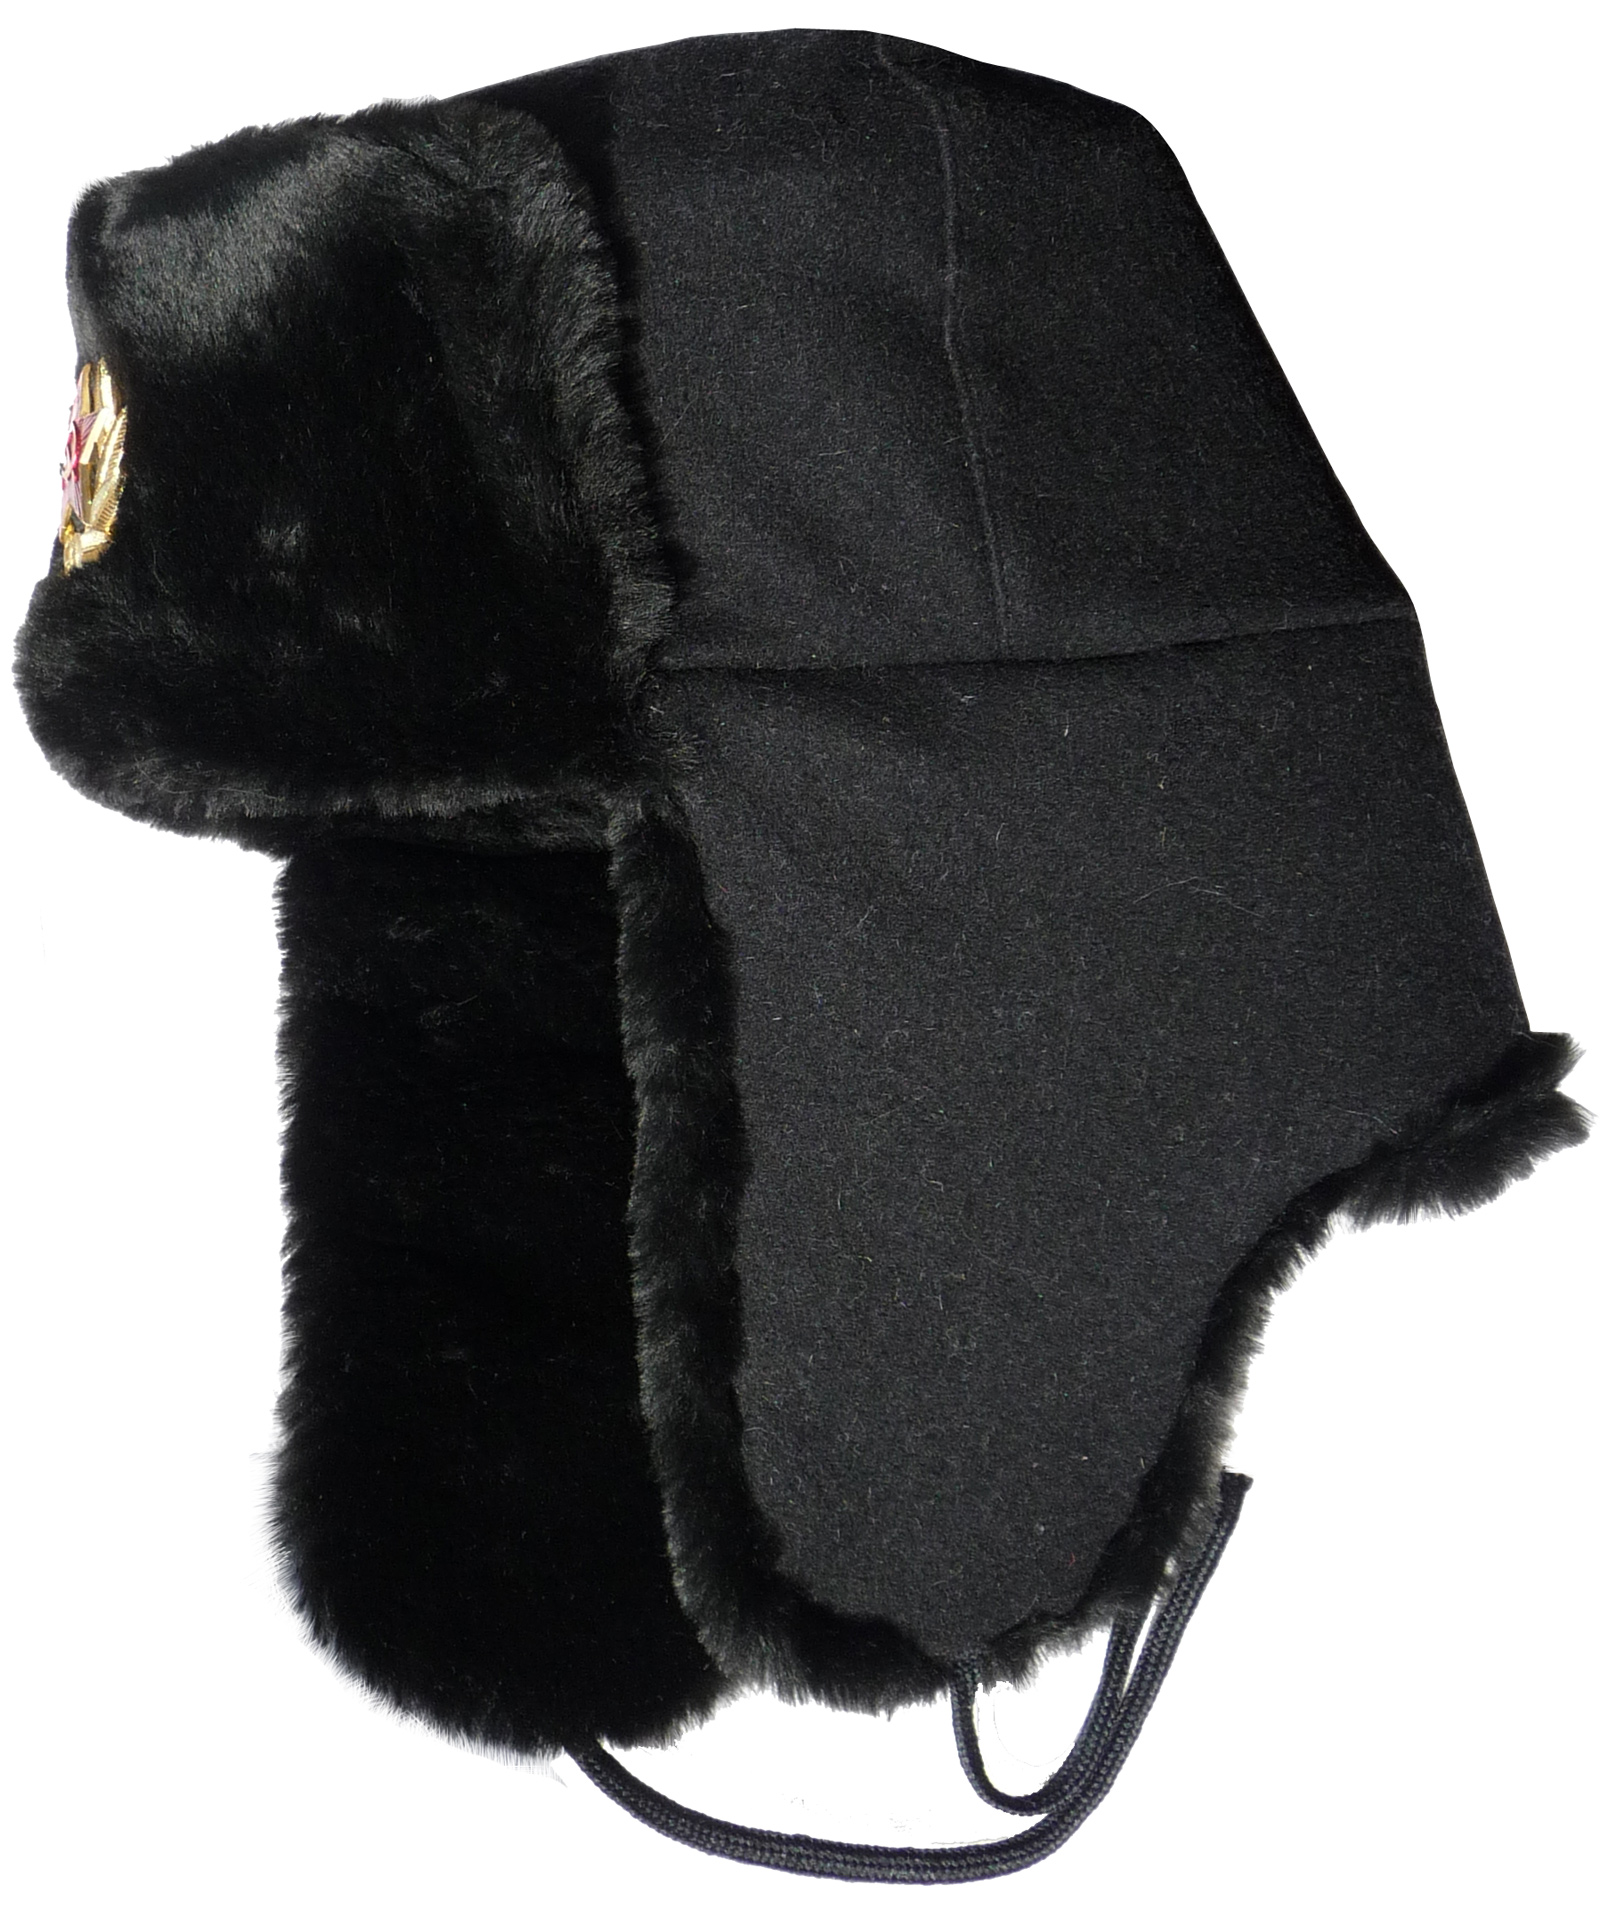 4238101ebbe Russian Navy seaman winter hat. Black.